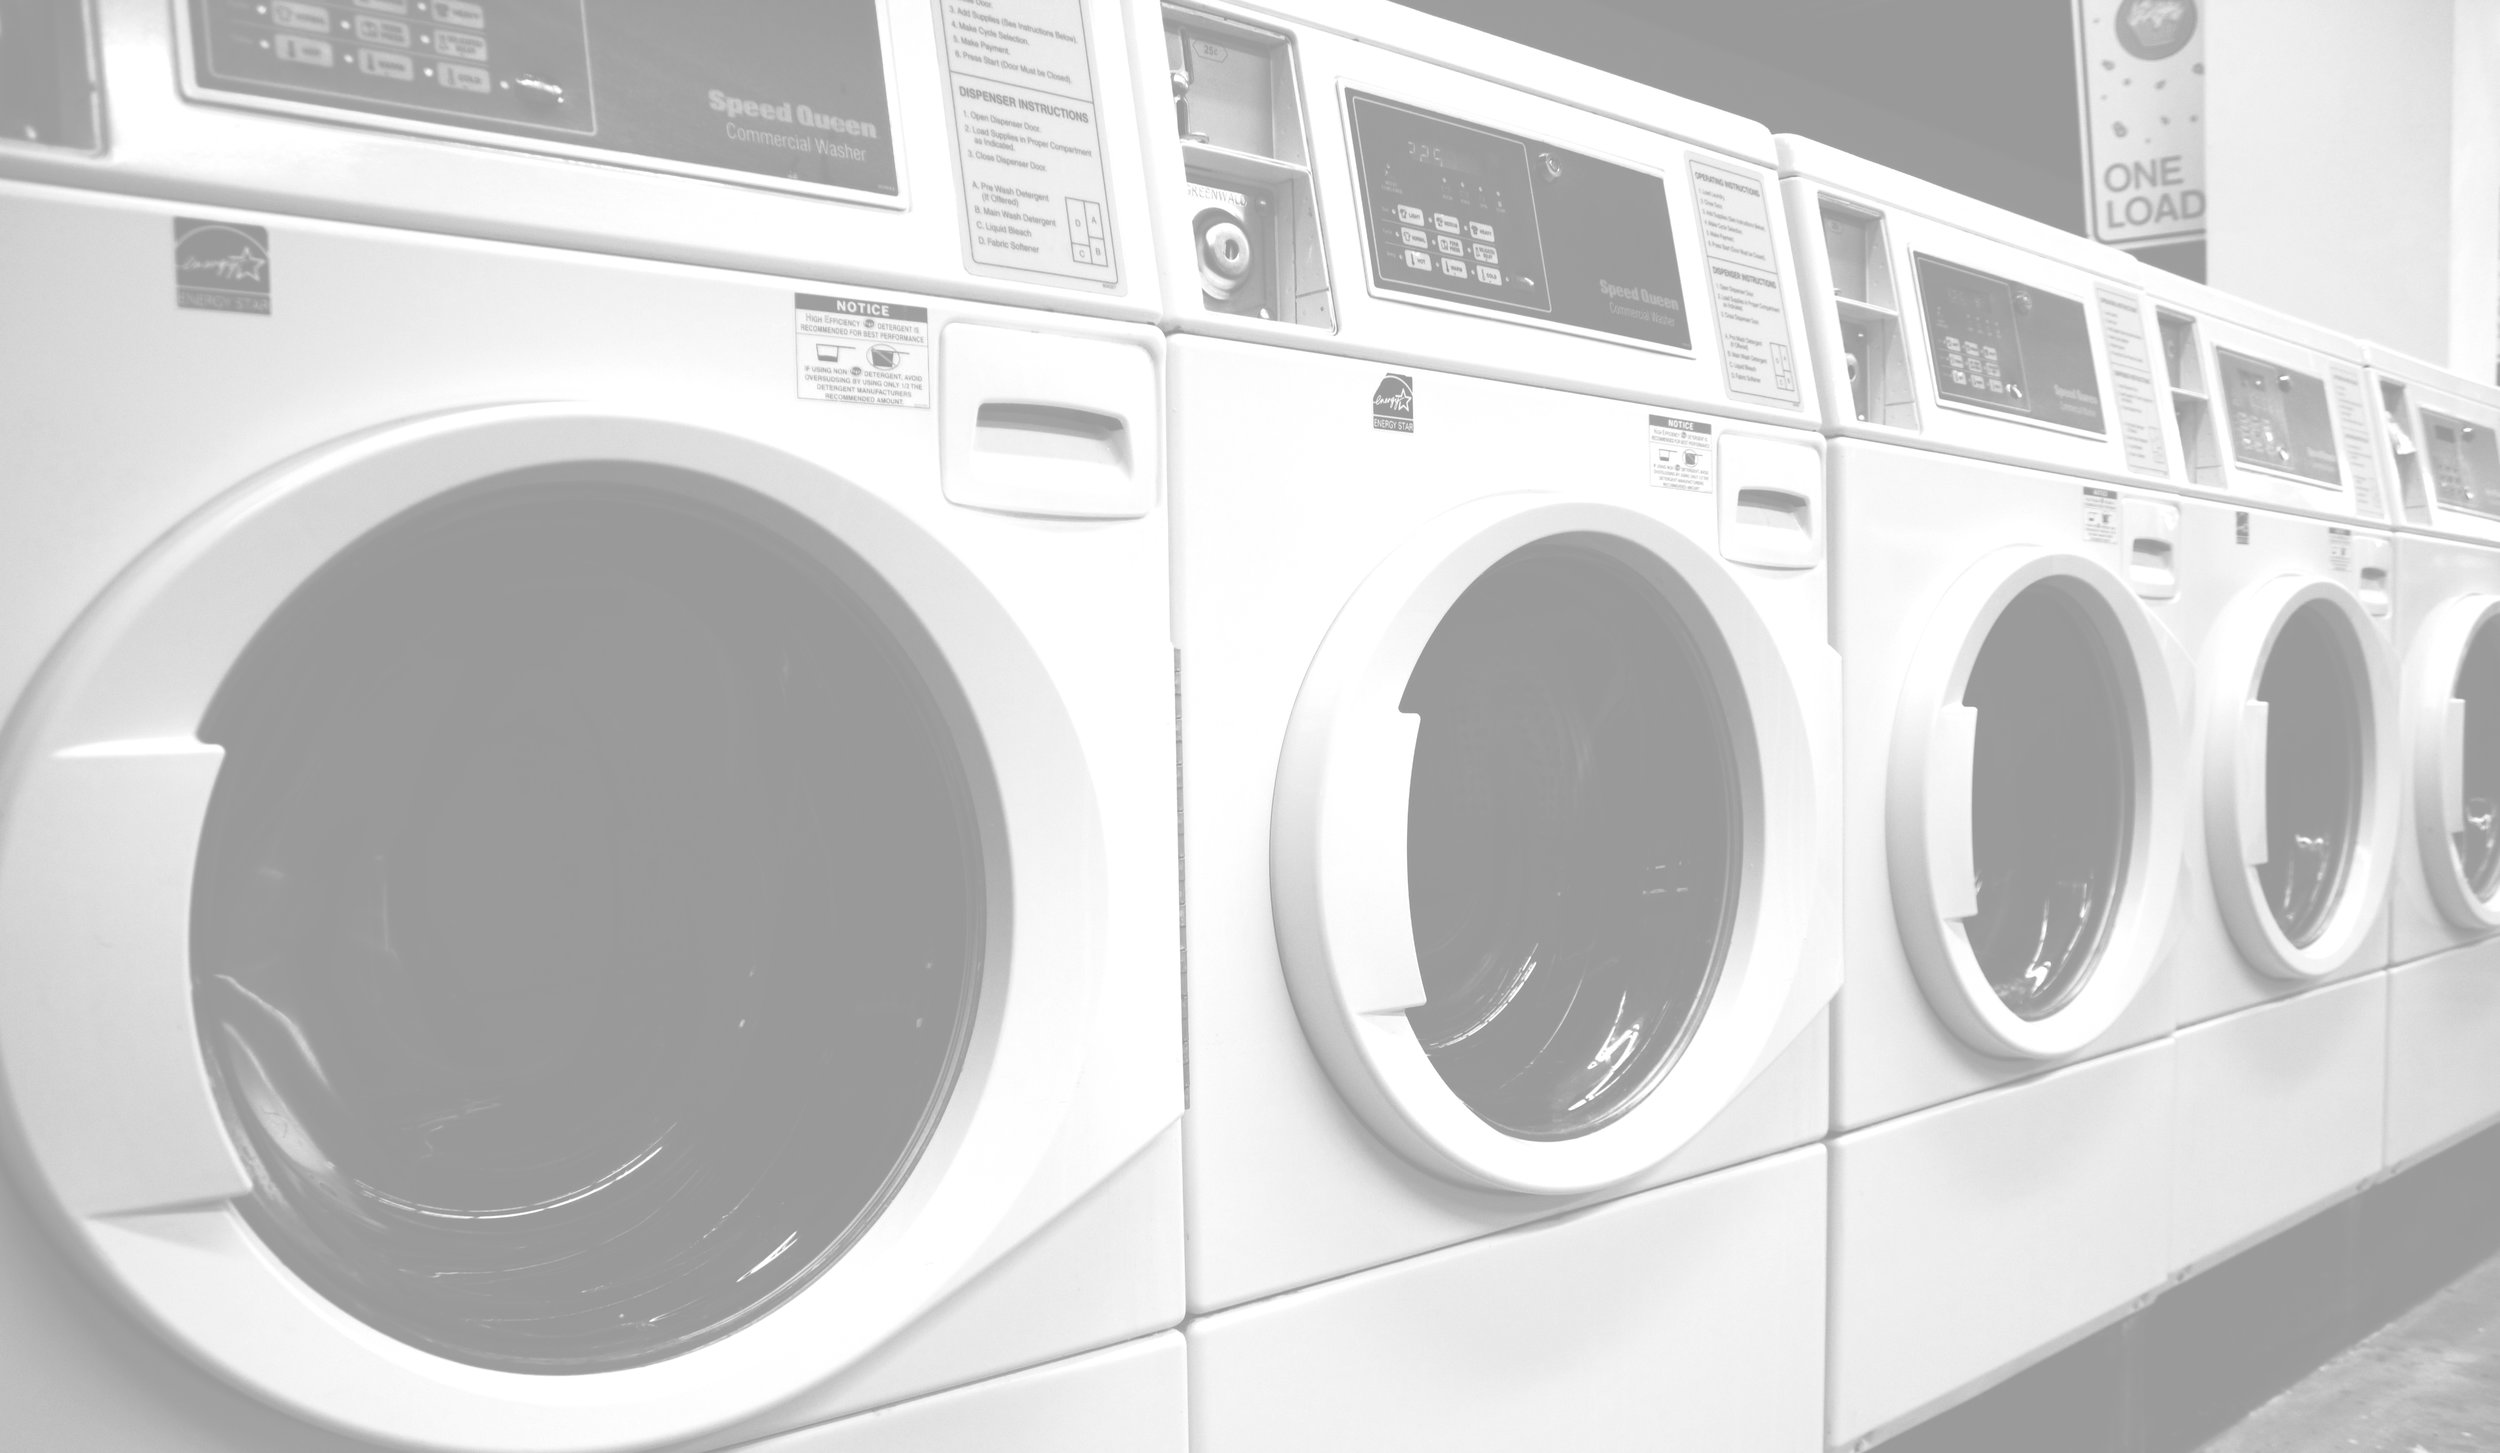 - A dry cleaning and laundry company that caters its services to the customer when it's most convenient for them.